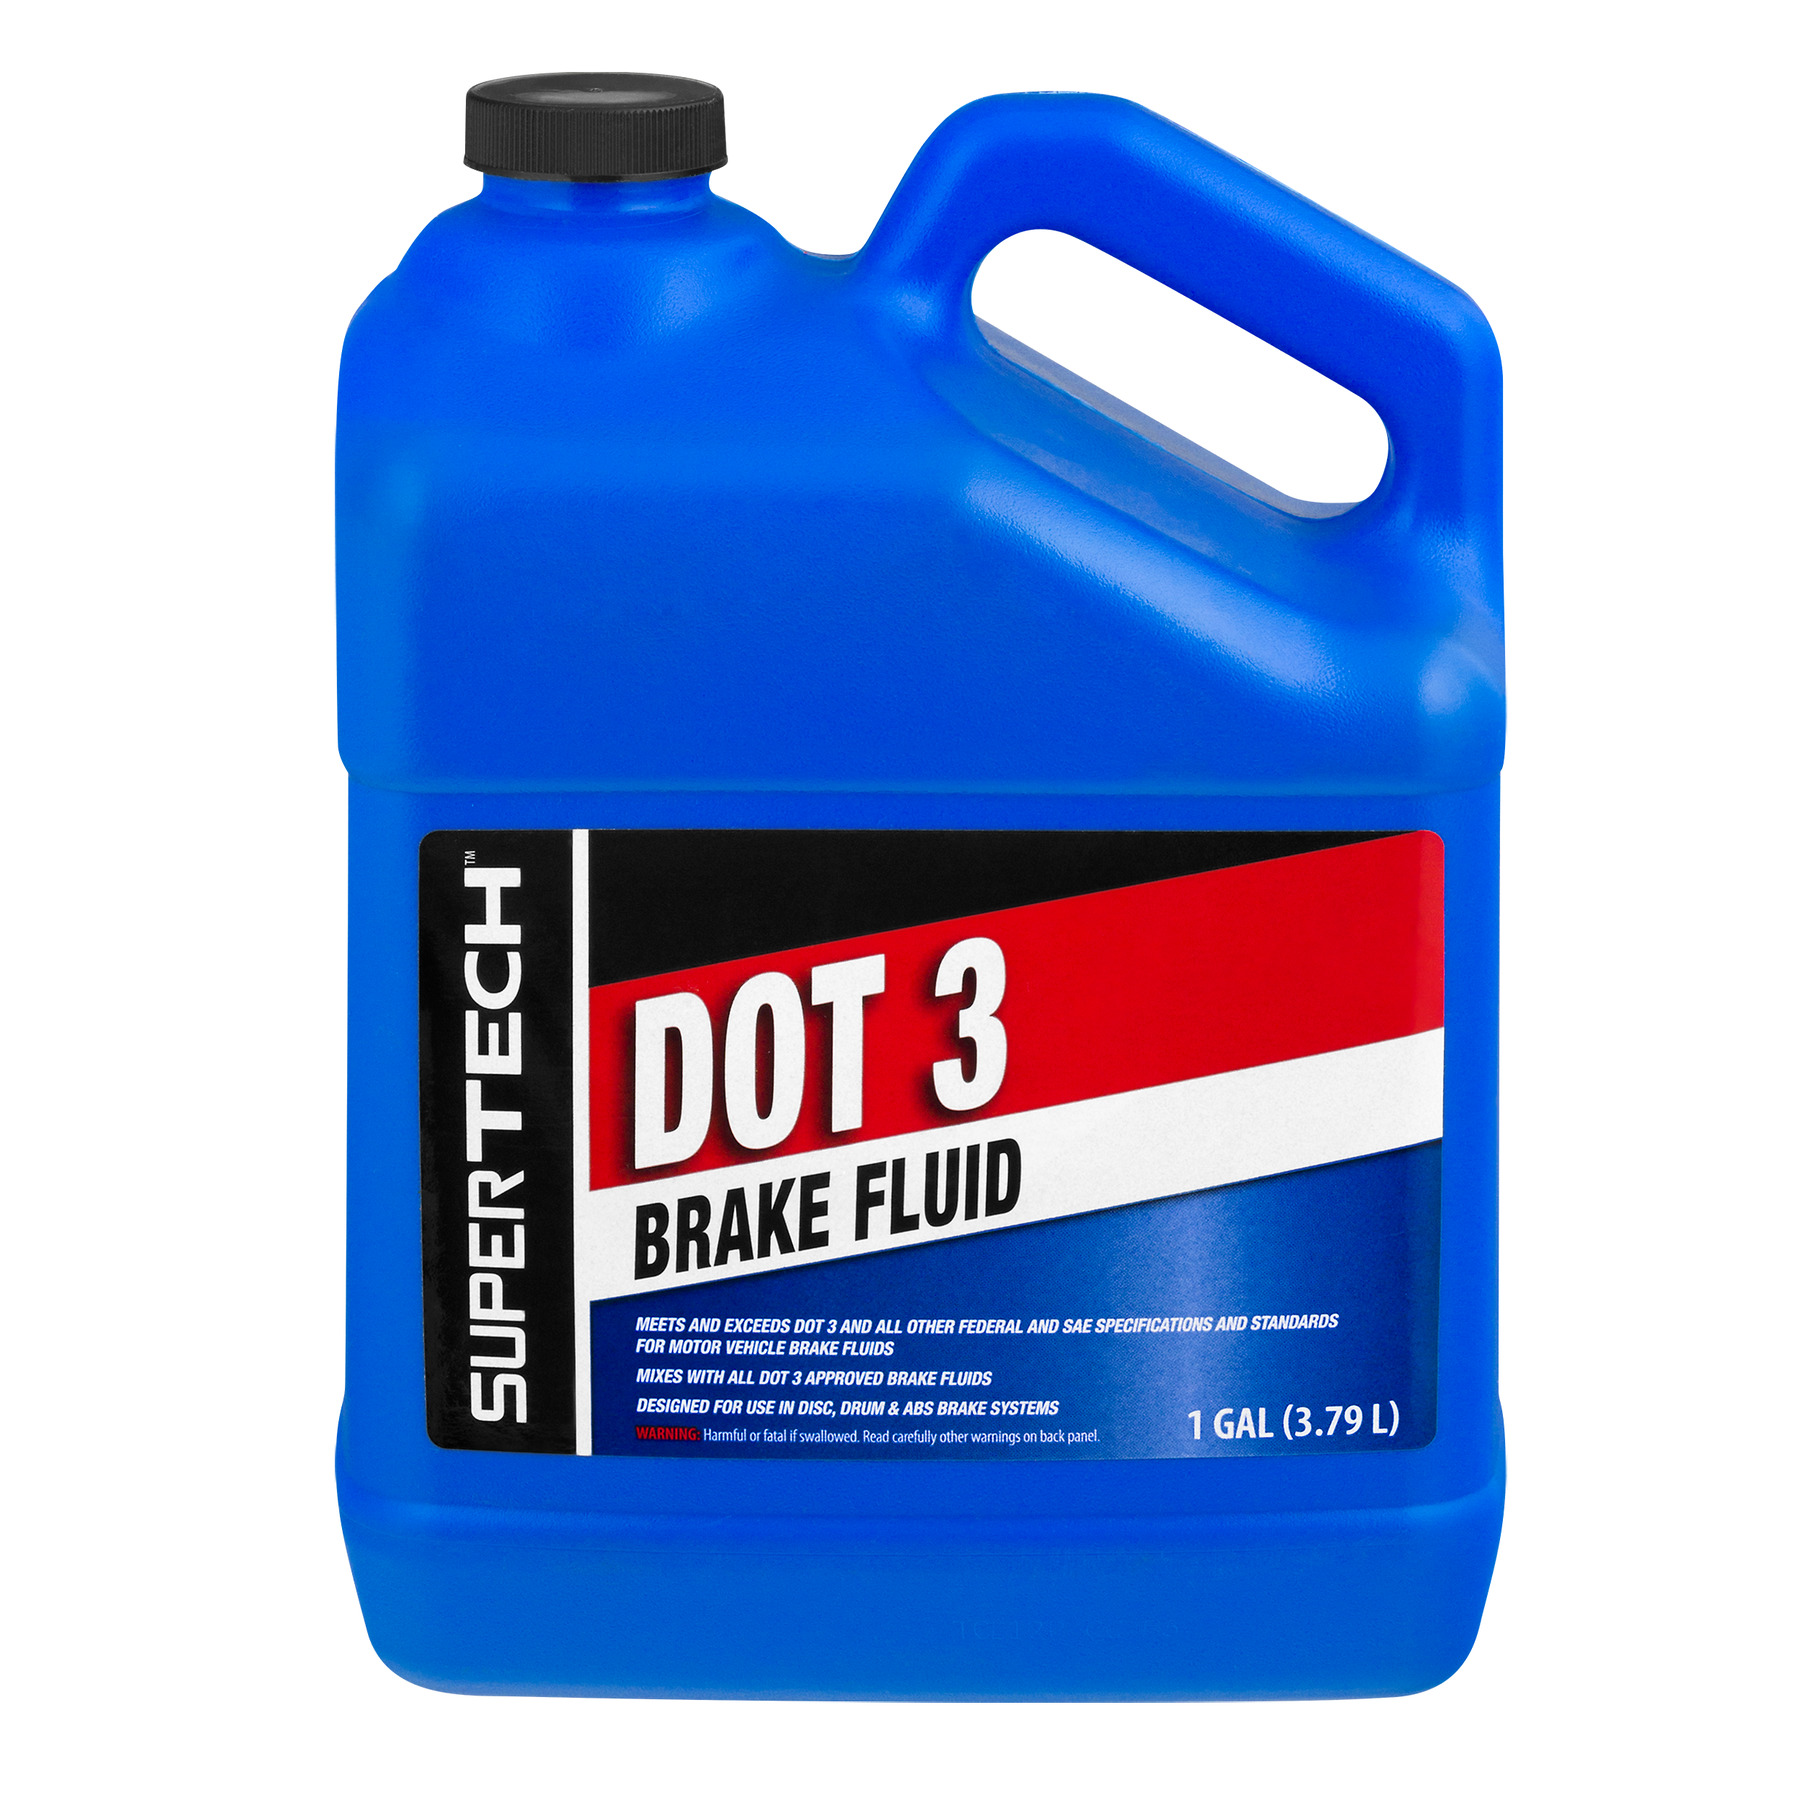 Super Tech Dot 3 Brake Fluid - 1 GAL, 1.0 GAL